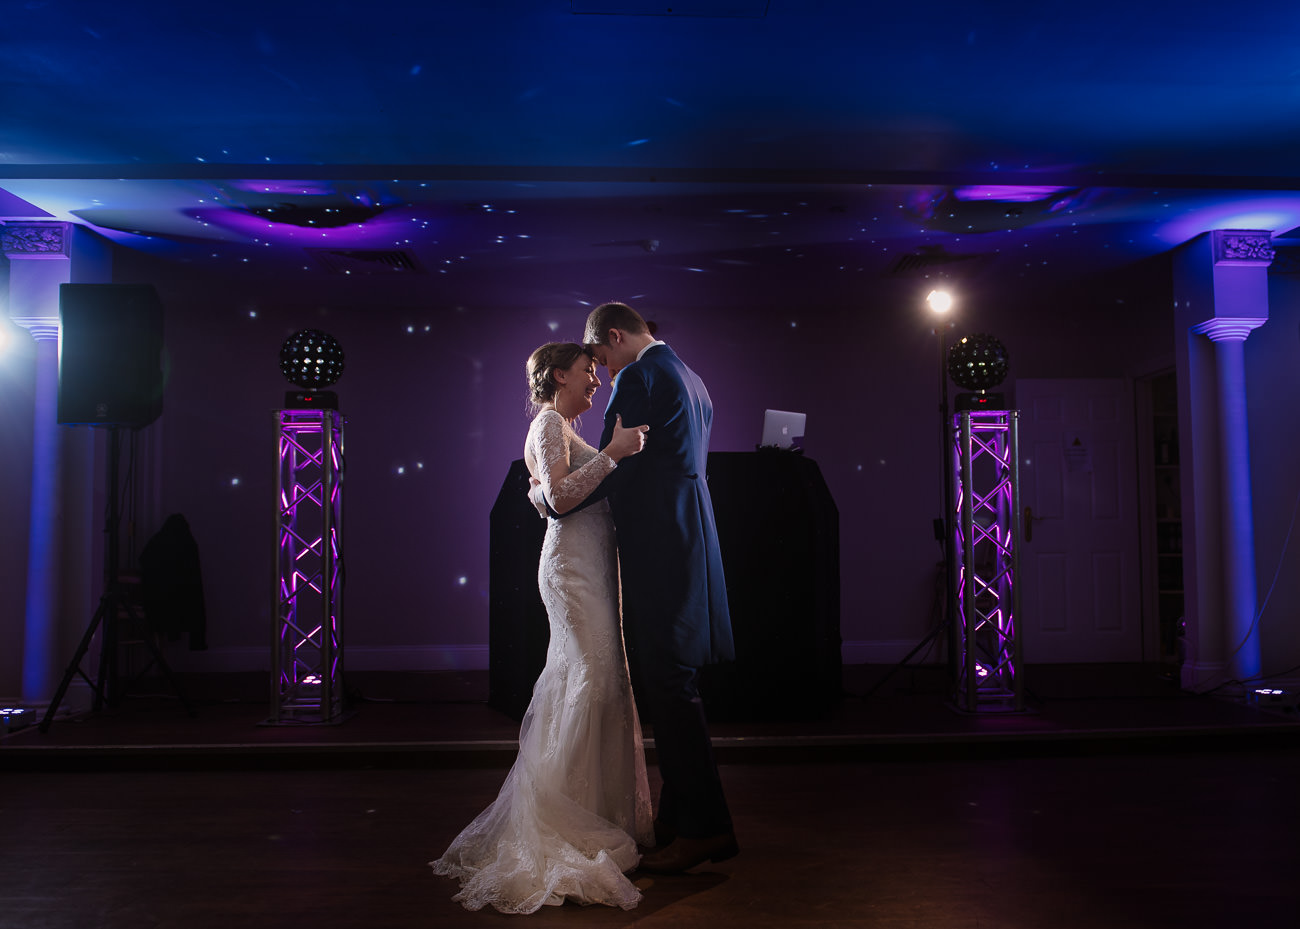 First dance wedding photography at Froyle Park